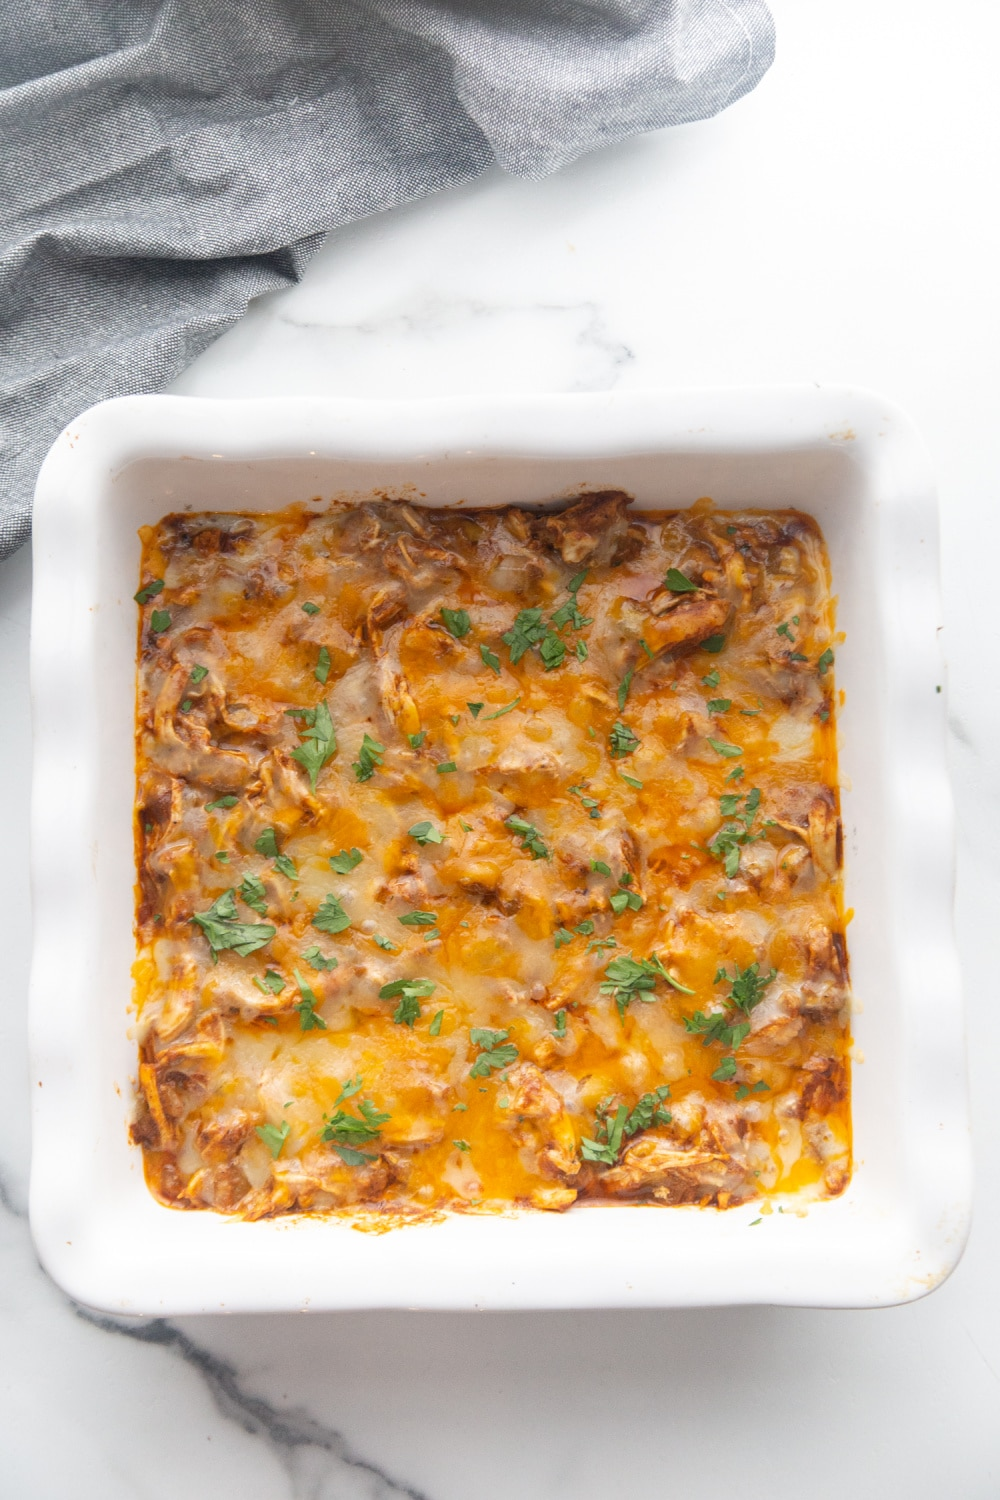 finished enchilada casserole in a pan